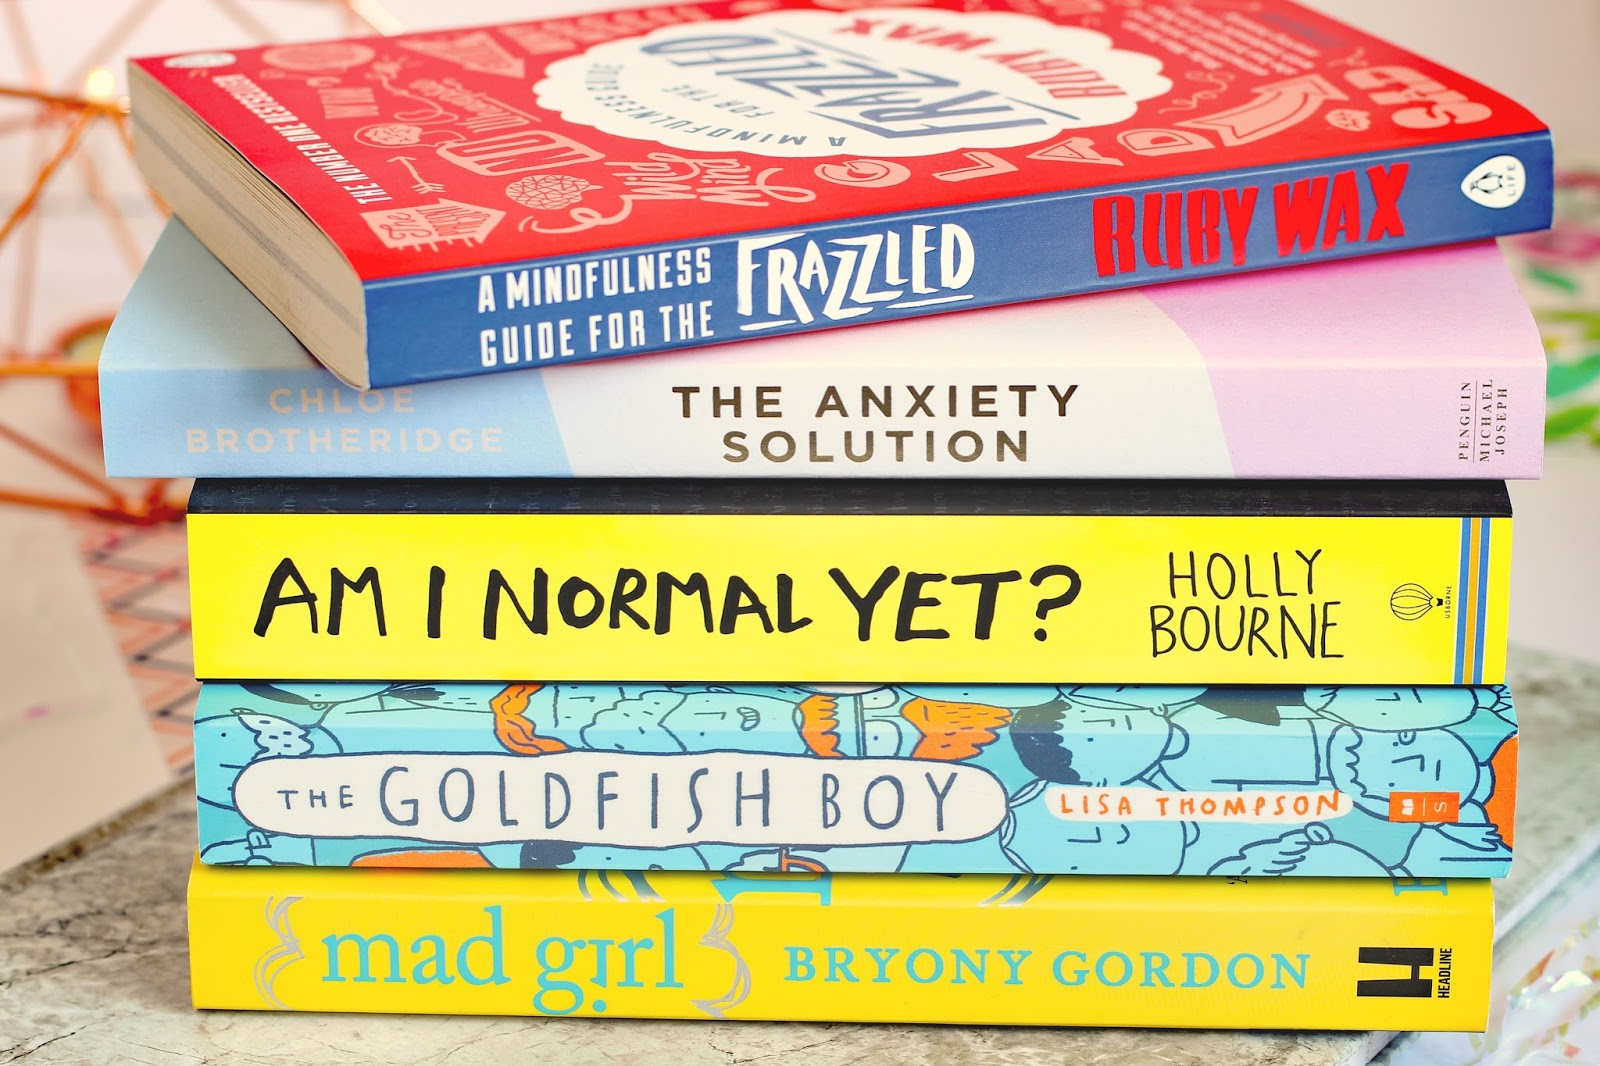 My Top Five Mental Health Books Whsmiths Amazon Waterstones help support advice anxiety panic attacks self harm self-help mind OCD depression